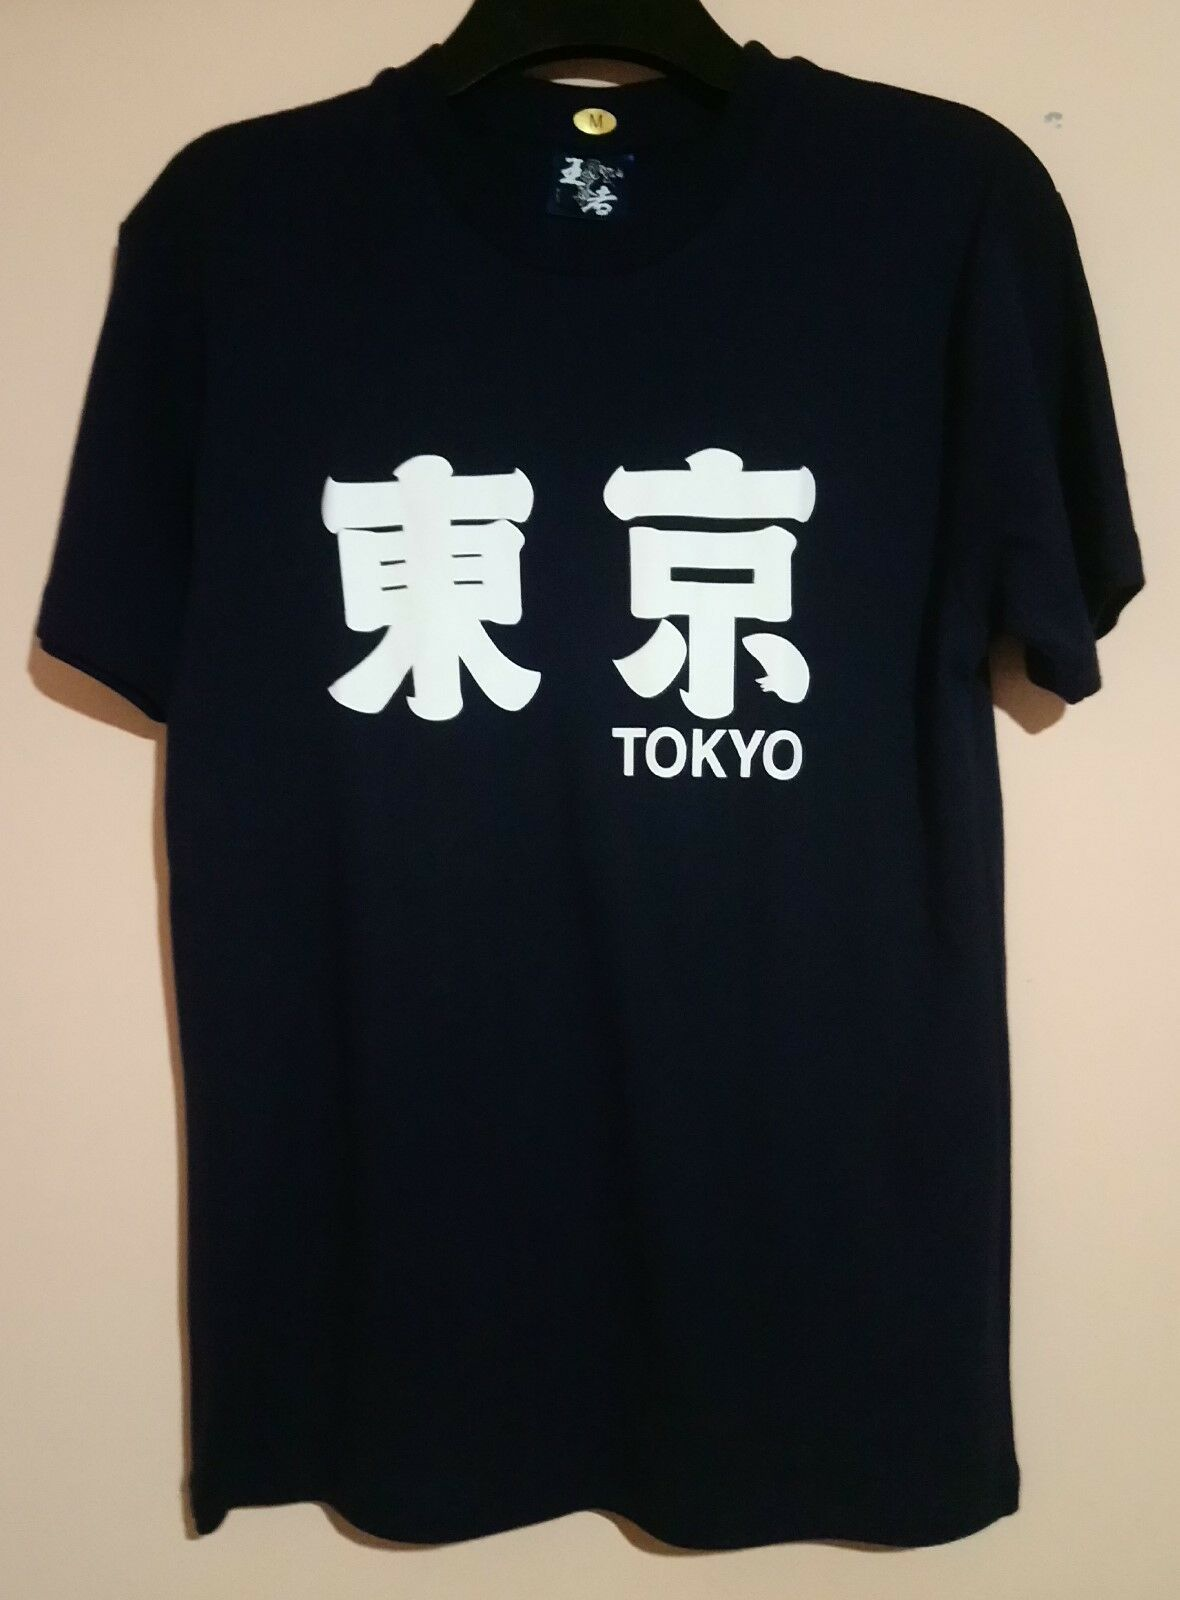 TOKYO DESIGNER LABEL BRANDED NAVY Blau T SHIRT SIZE M BRAND NEW WITH SIZE LABEL